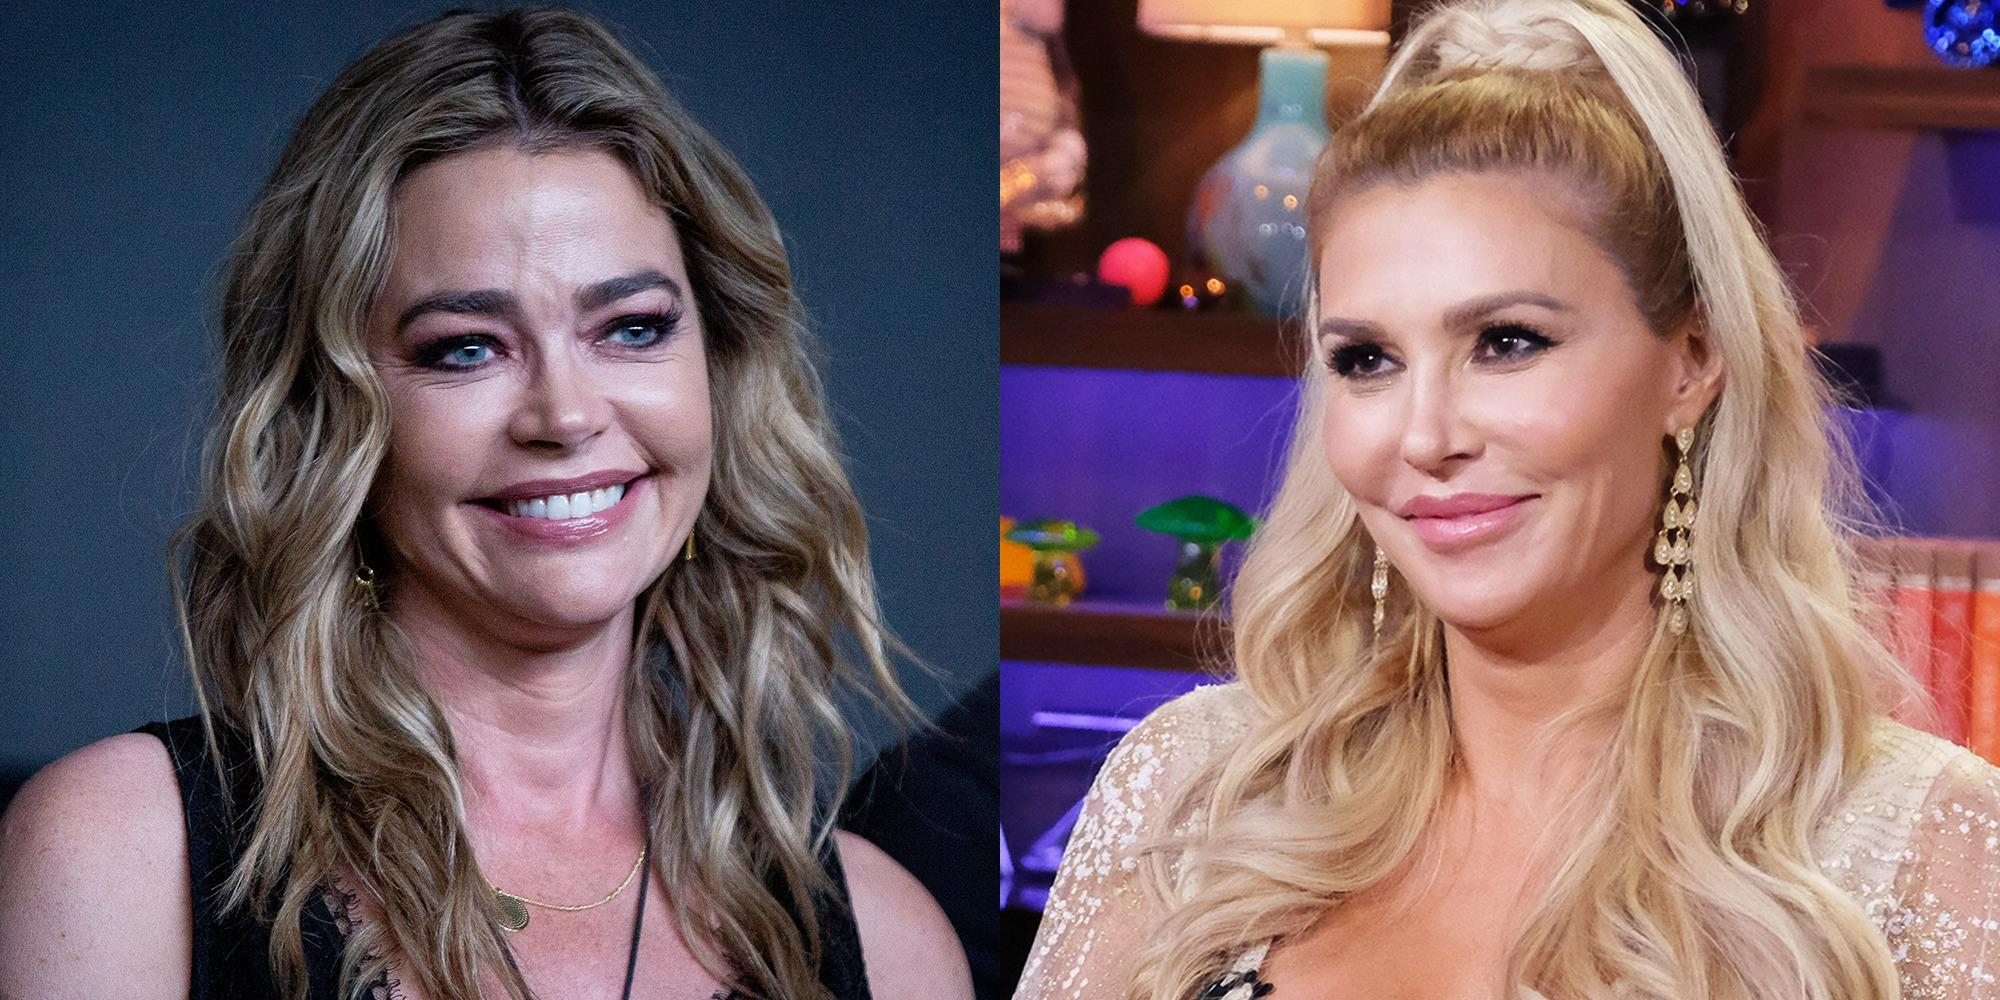 Brandi Glanville Opens Up About The Reason She Wasn't On The 'RHOBH' Reunion Episode Amid Affair Drama With Co-Star Denise Richards